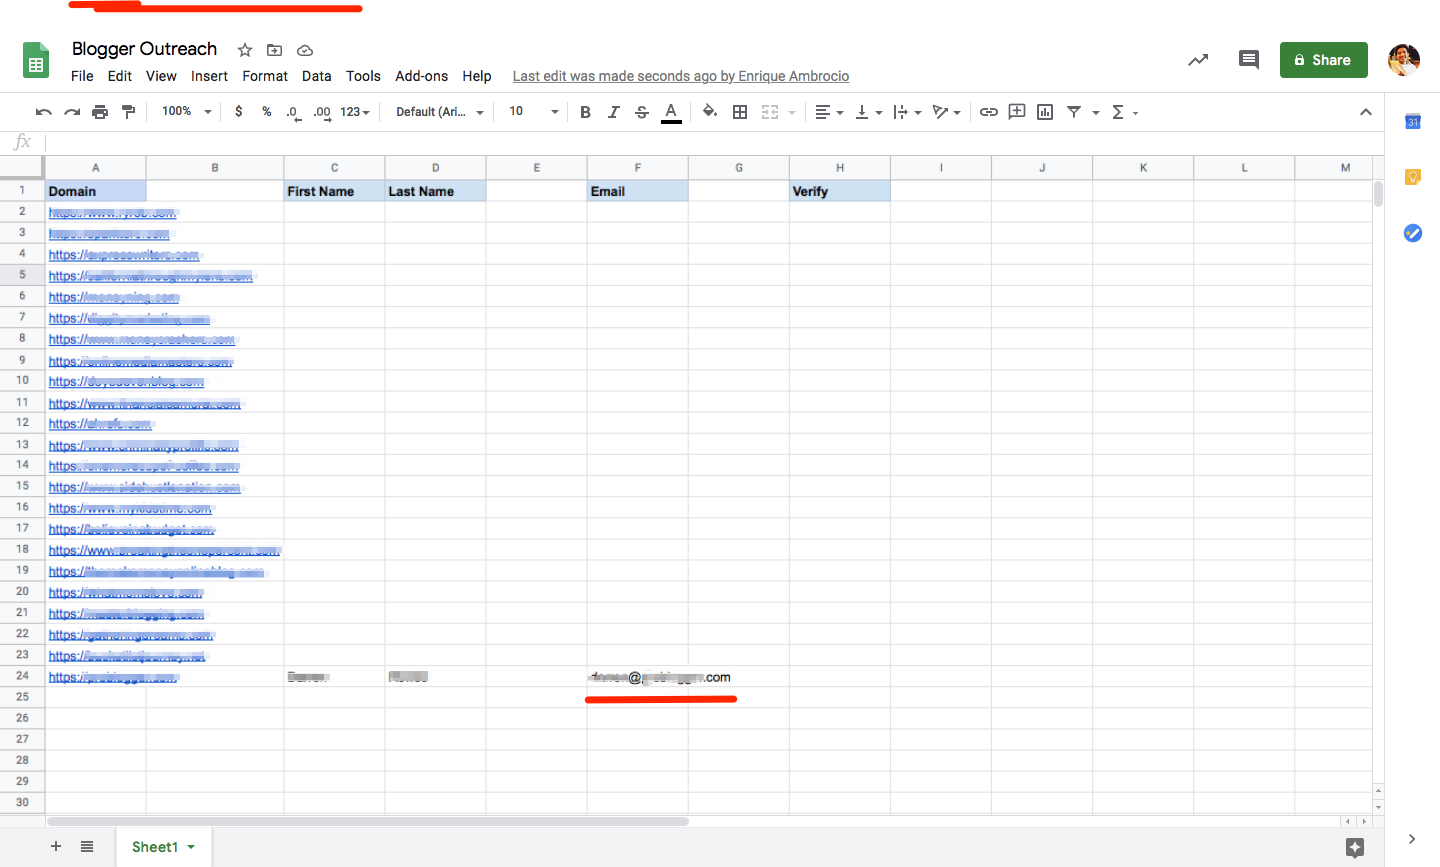 A spreadsheet with columns for domain, first name, last name, email, and verify, with a new email entered in one row.